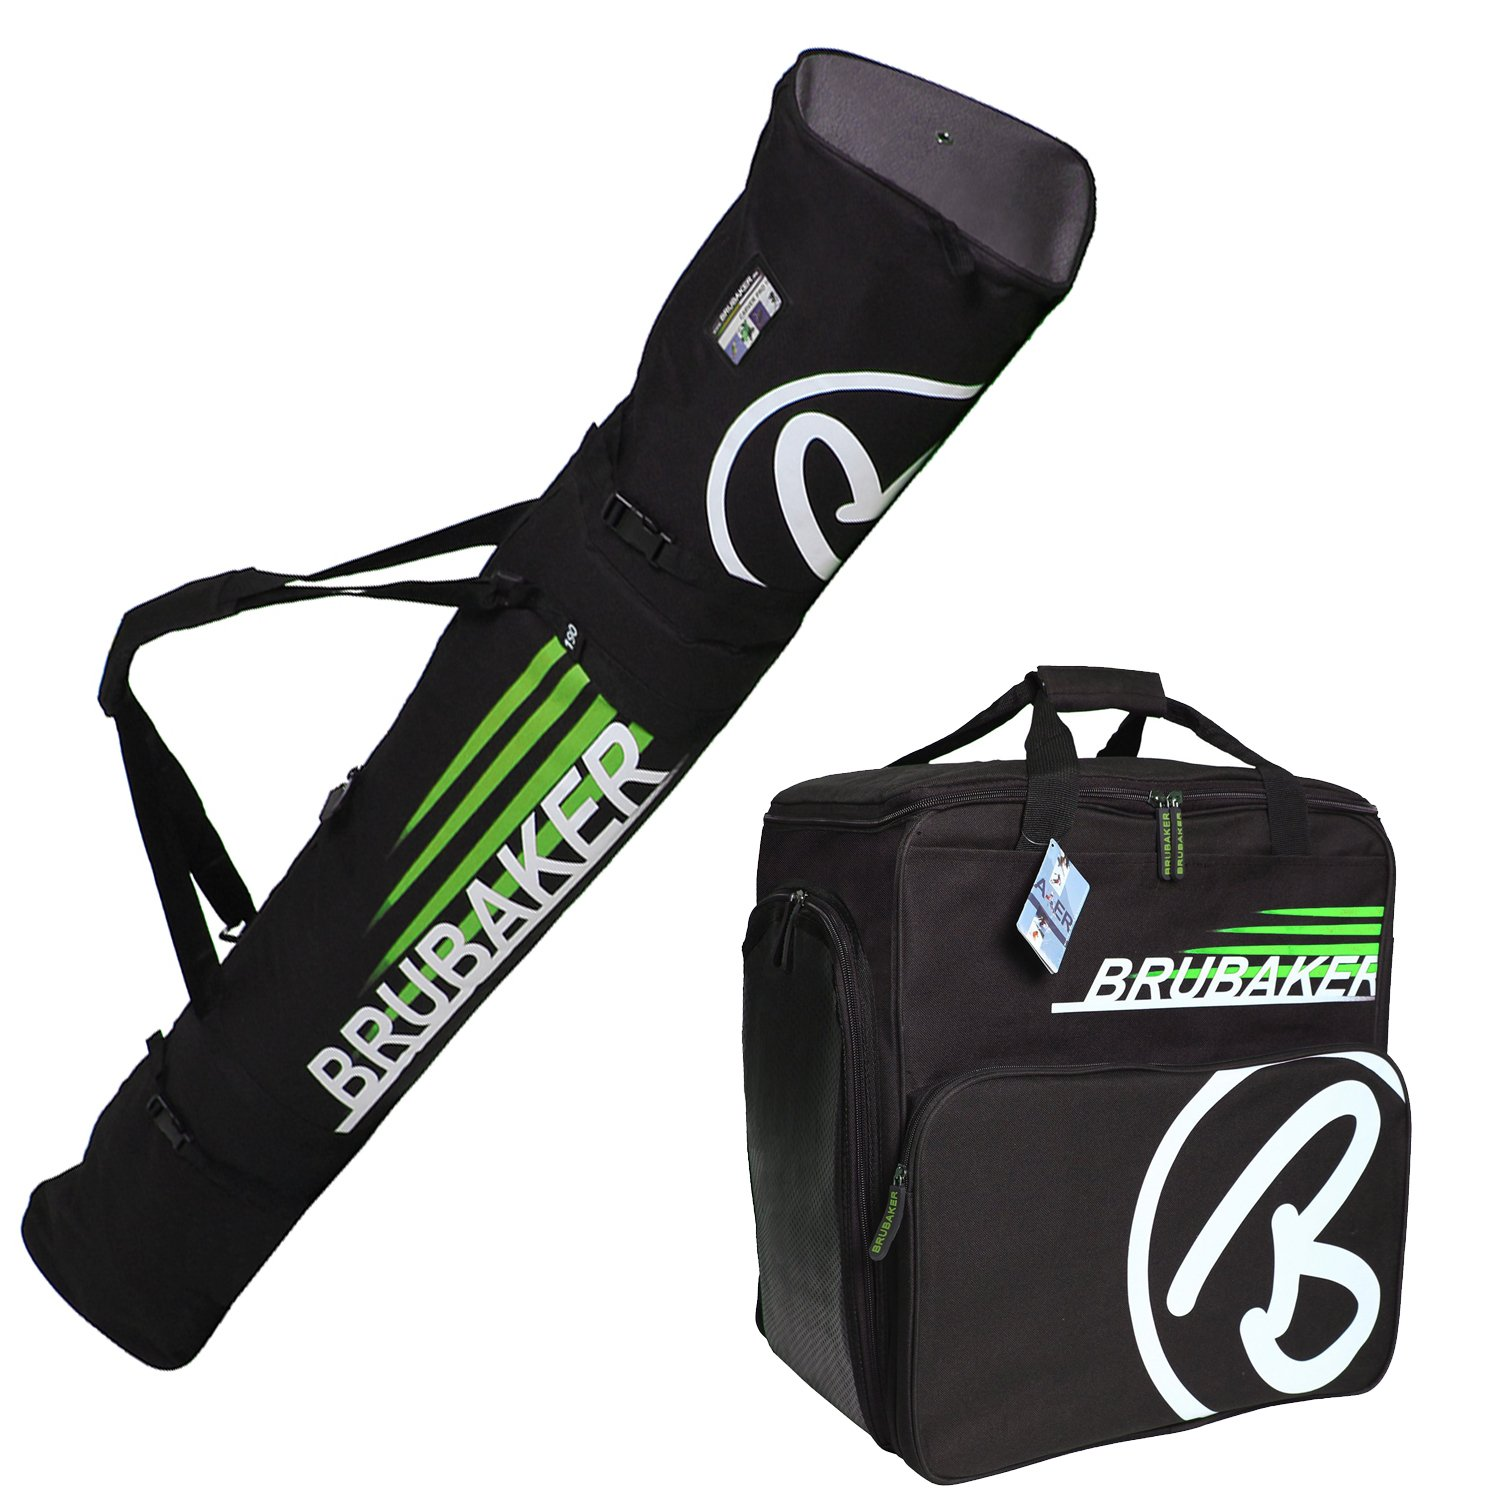 HENRY BRUBAKER ''Champion'' Combo Ski Boot Bag and Ski Bag for 1 Pair of Ski up to 190 cm, Poles, Boots and Helmet - Black Green